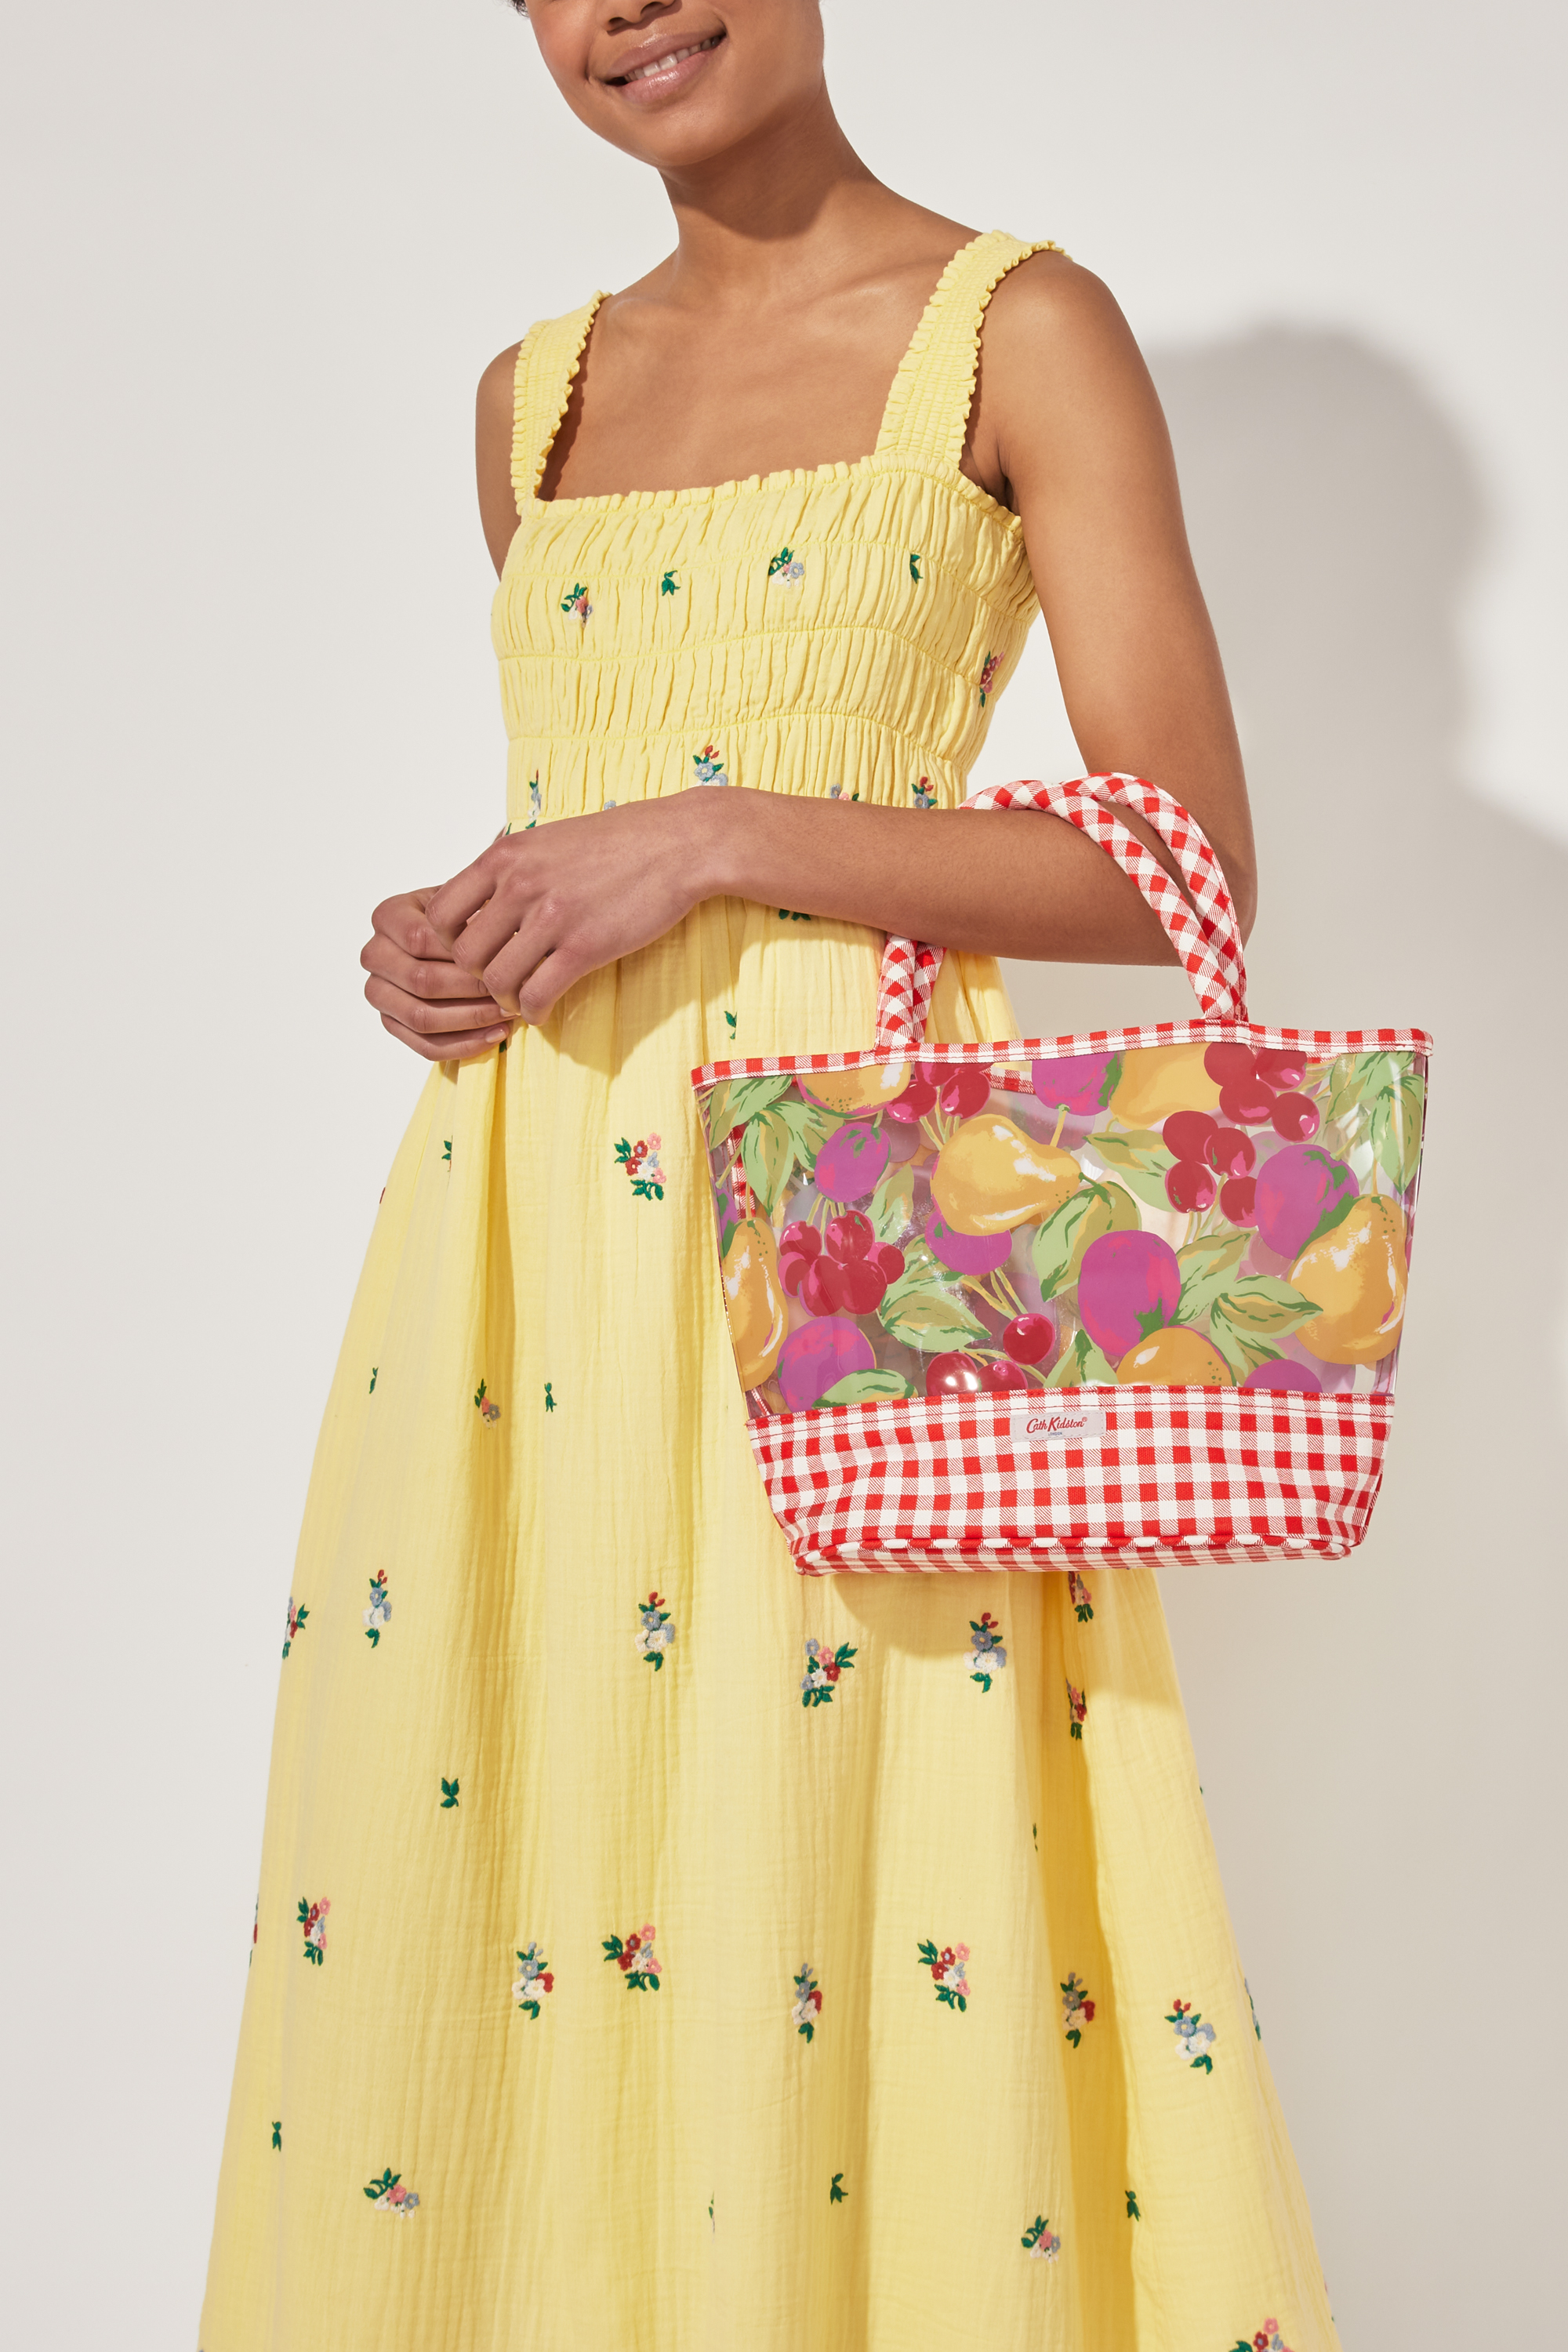 Cath Kidston Painted Fruit PVC Tote in Warm Cream